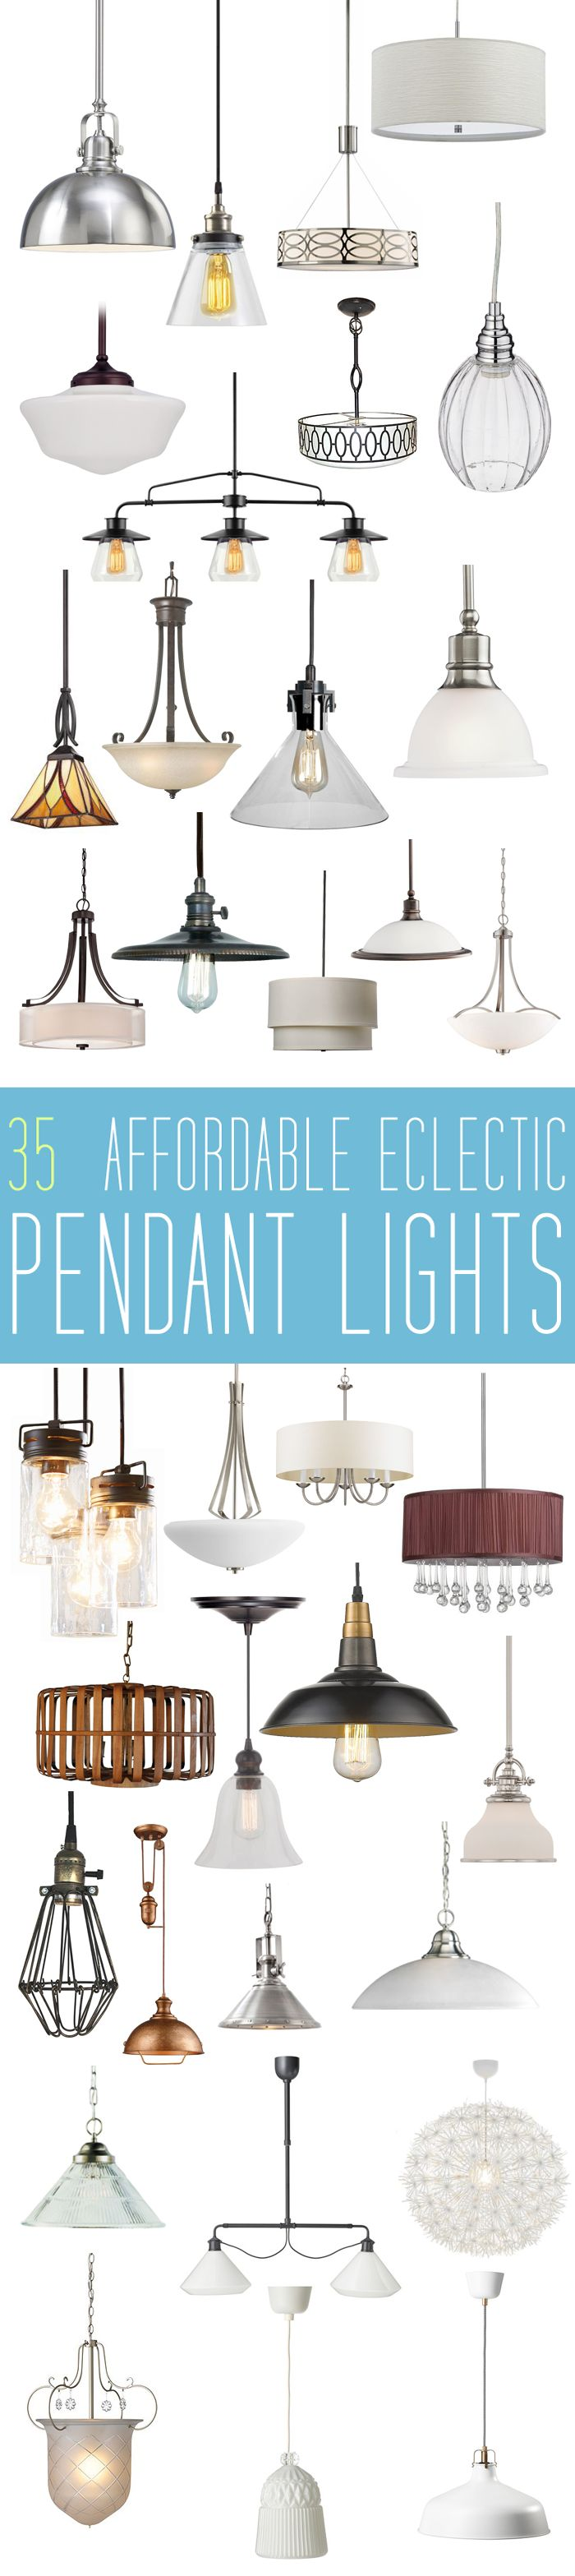 eclectic lighting fixtures. 35 Eclectic Affordable Pendant Lights - The Cottage Market Lighting Fixtures A